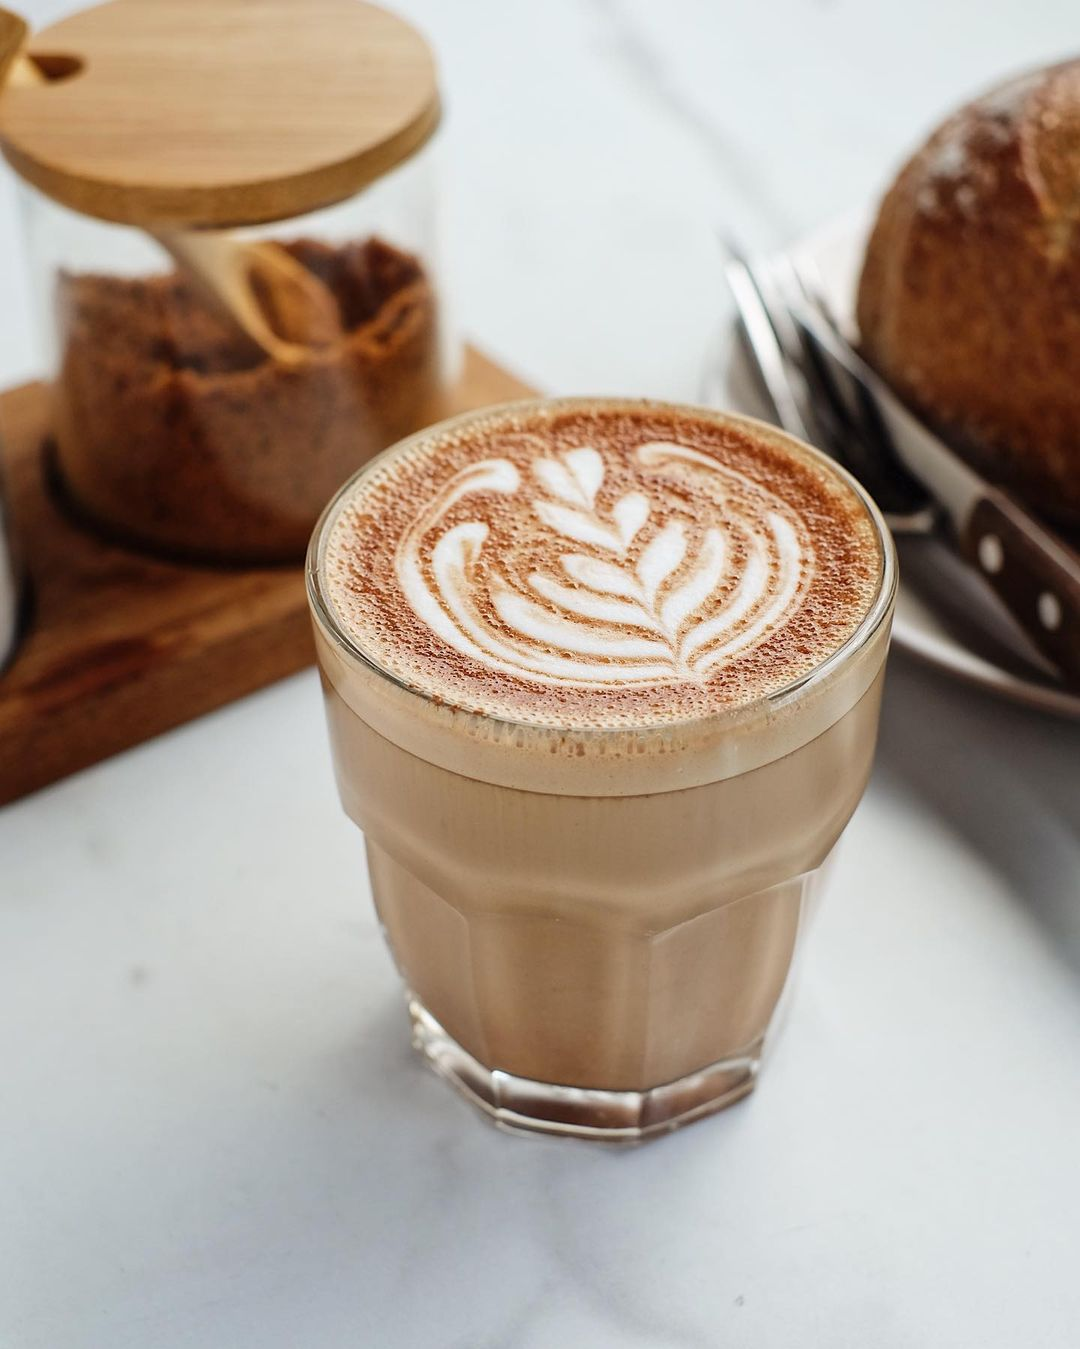 vegan and vegetarian cafes in jakarta - monolog coffee latte